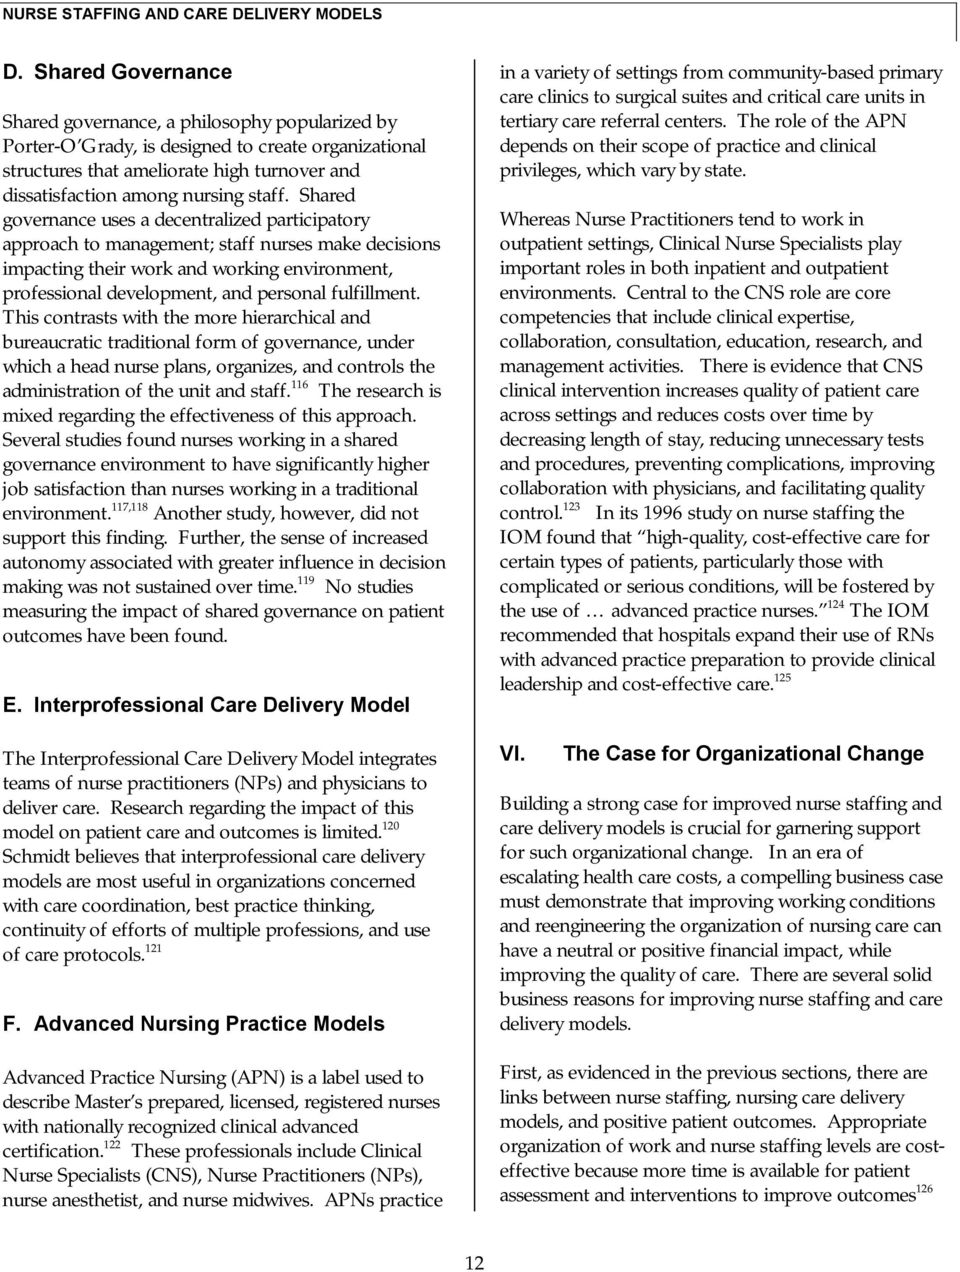 NURSE STAFFING AND CARE DELIVERY MODELS: A REVIEW OF THE